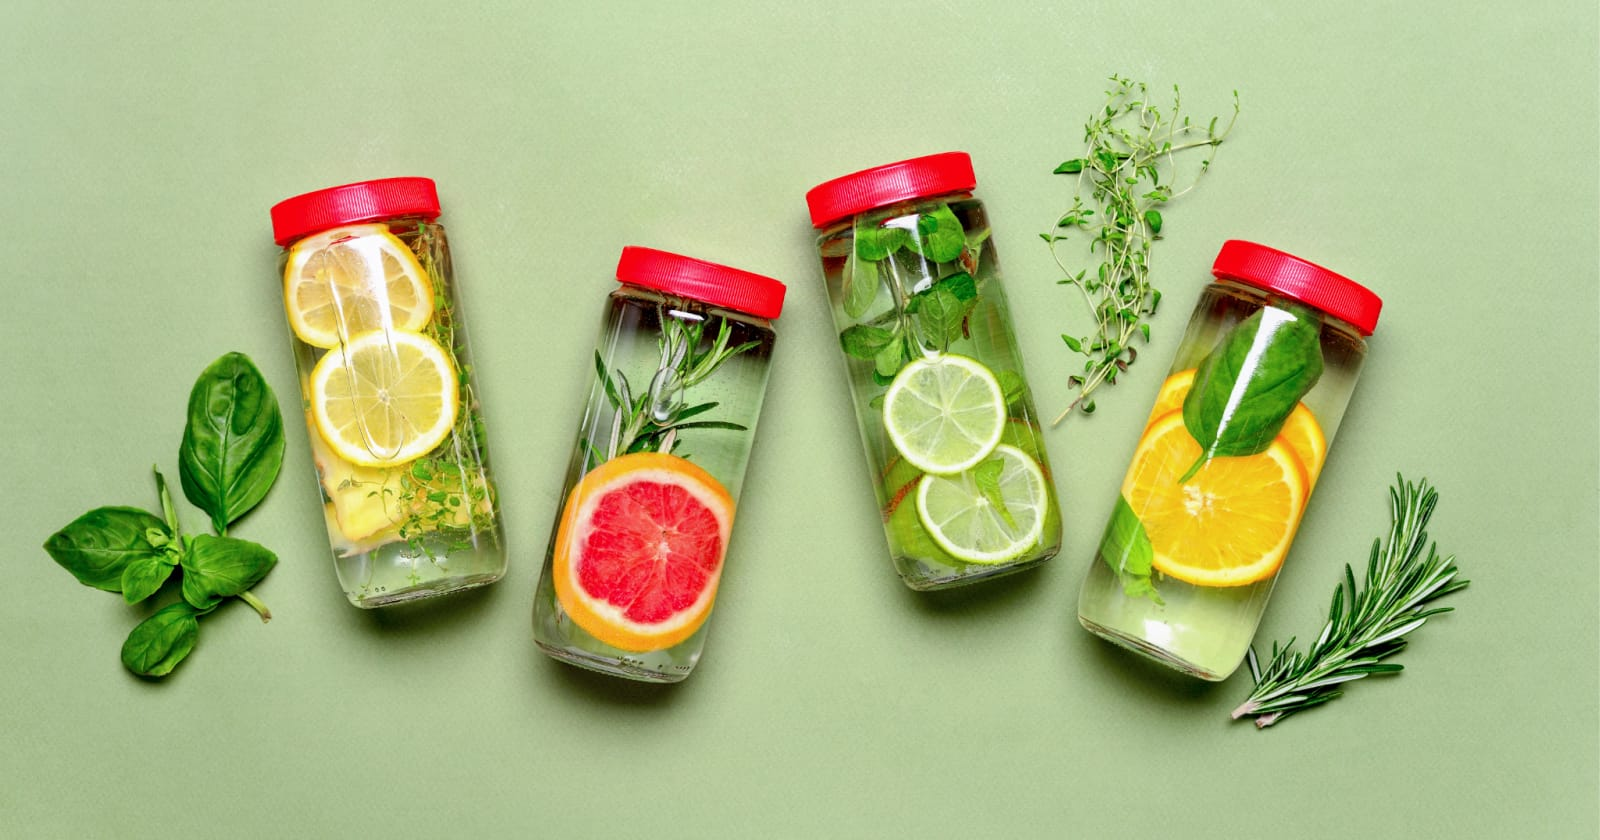 Need to get more water into your diet but can't stand the plain stuff? Try these infused water recipes! Plus, check out some of the health benefits and some general tips & tricks!